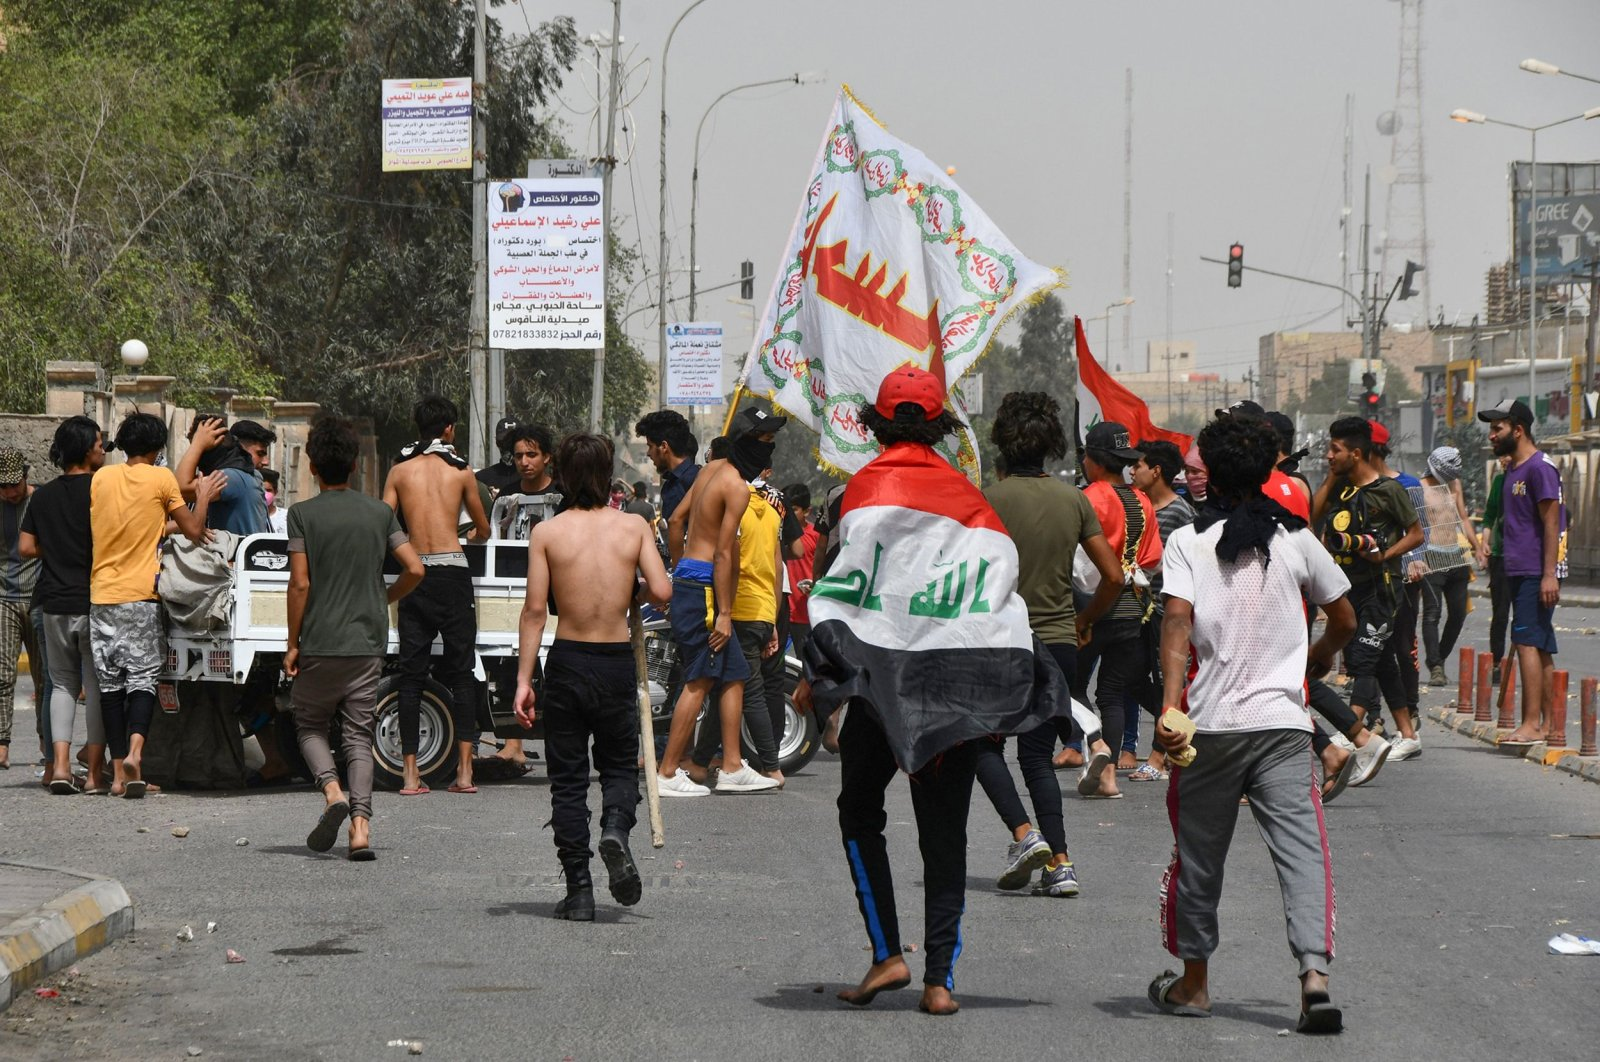 Iraqi protesters gather to block a street during an anti-government demonstration in Iraq's southern city of Nasiriyah, Dhi Qar province, May 10, 2020. (AFP Photo)